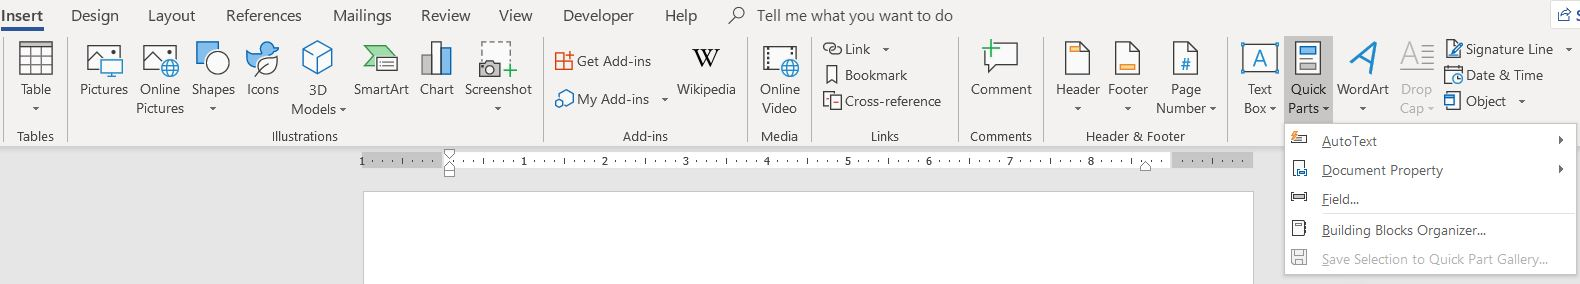 Five of the Most Underutilized Features in Microsoft Word